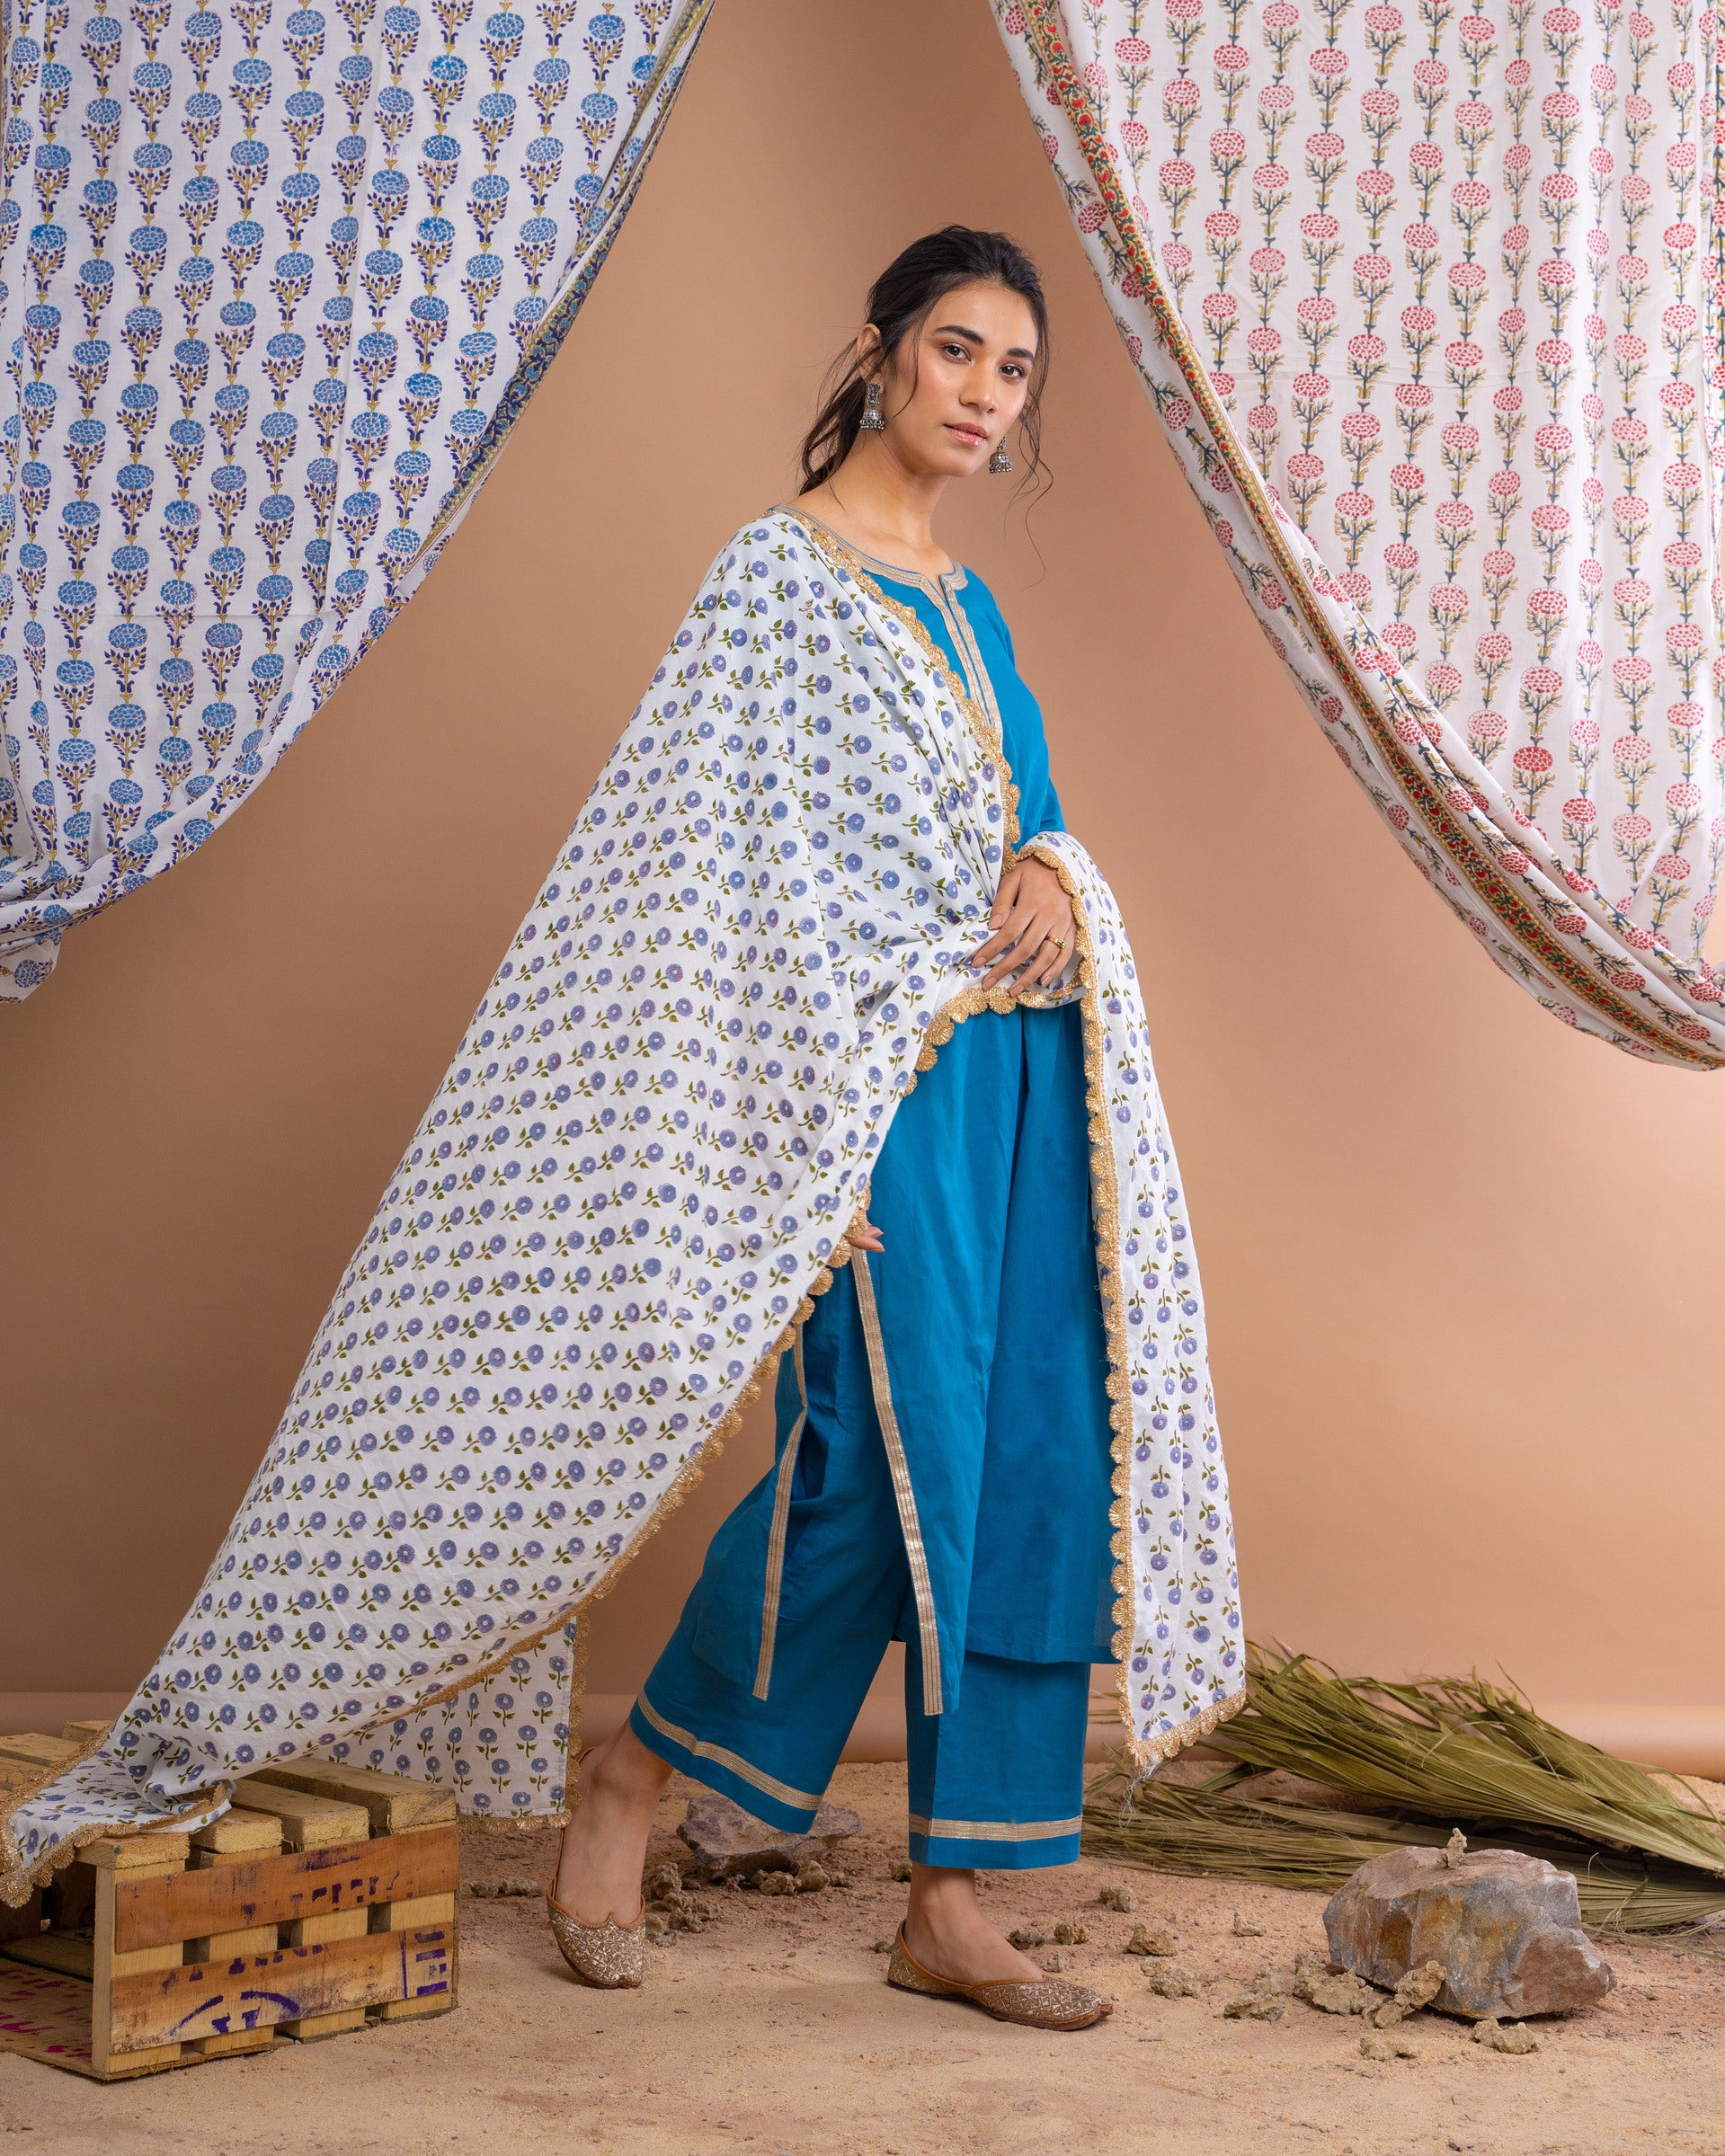 Blue Cotton Gota Suit With Off White Hand Block Printed Mulmul Dupatta